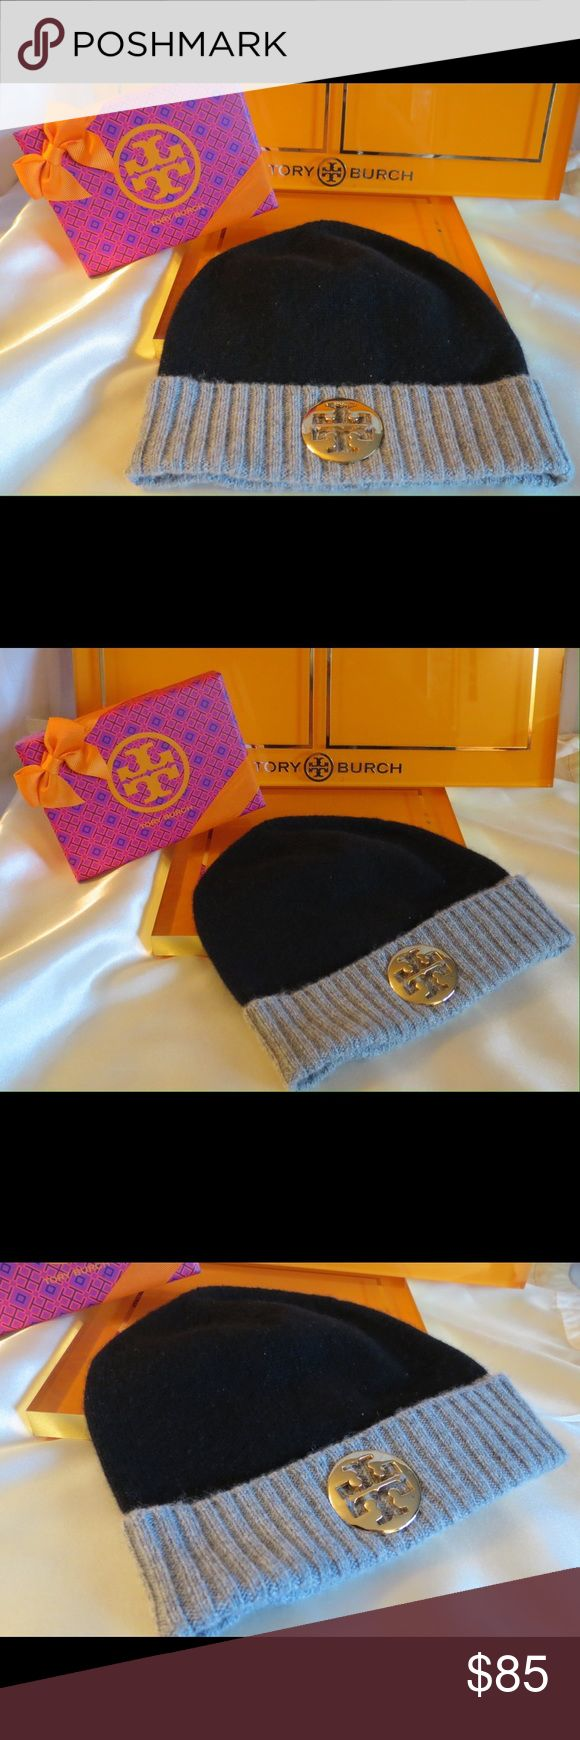 NEW Tory Burch 100% Cashmere Hat Gold Logo NEW Tory Burch 100% Cashmere Hat Gold Logo  Brand NEW Without TAGS! Tory Burch + Gift Box  Fabulous black and gray soft luxury cashmere!!  The box was for something else, it's a bit small for the hat but it does fit and think it's a nice thing to include for you!  All of my items are Guaranteed 100% Genuine I do not sell FAKES of any kind!  No Trades  (01J007) Tory Burch Accessories